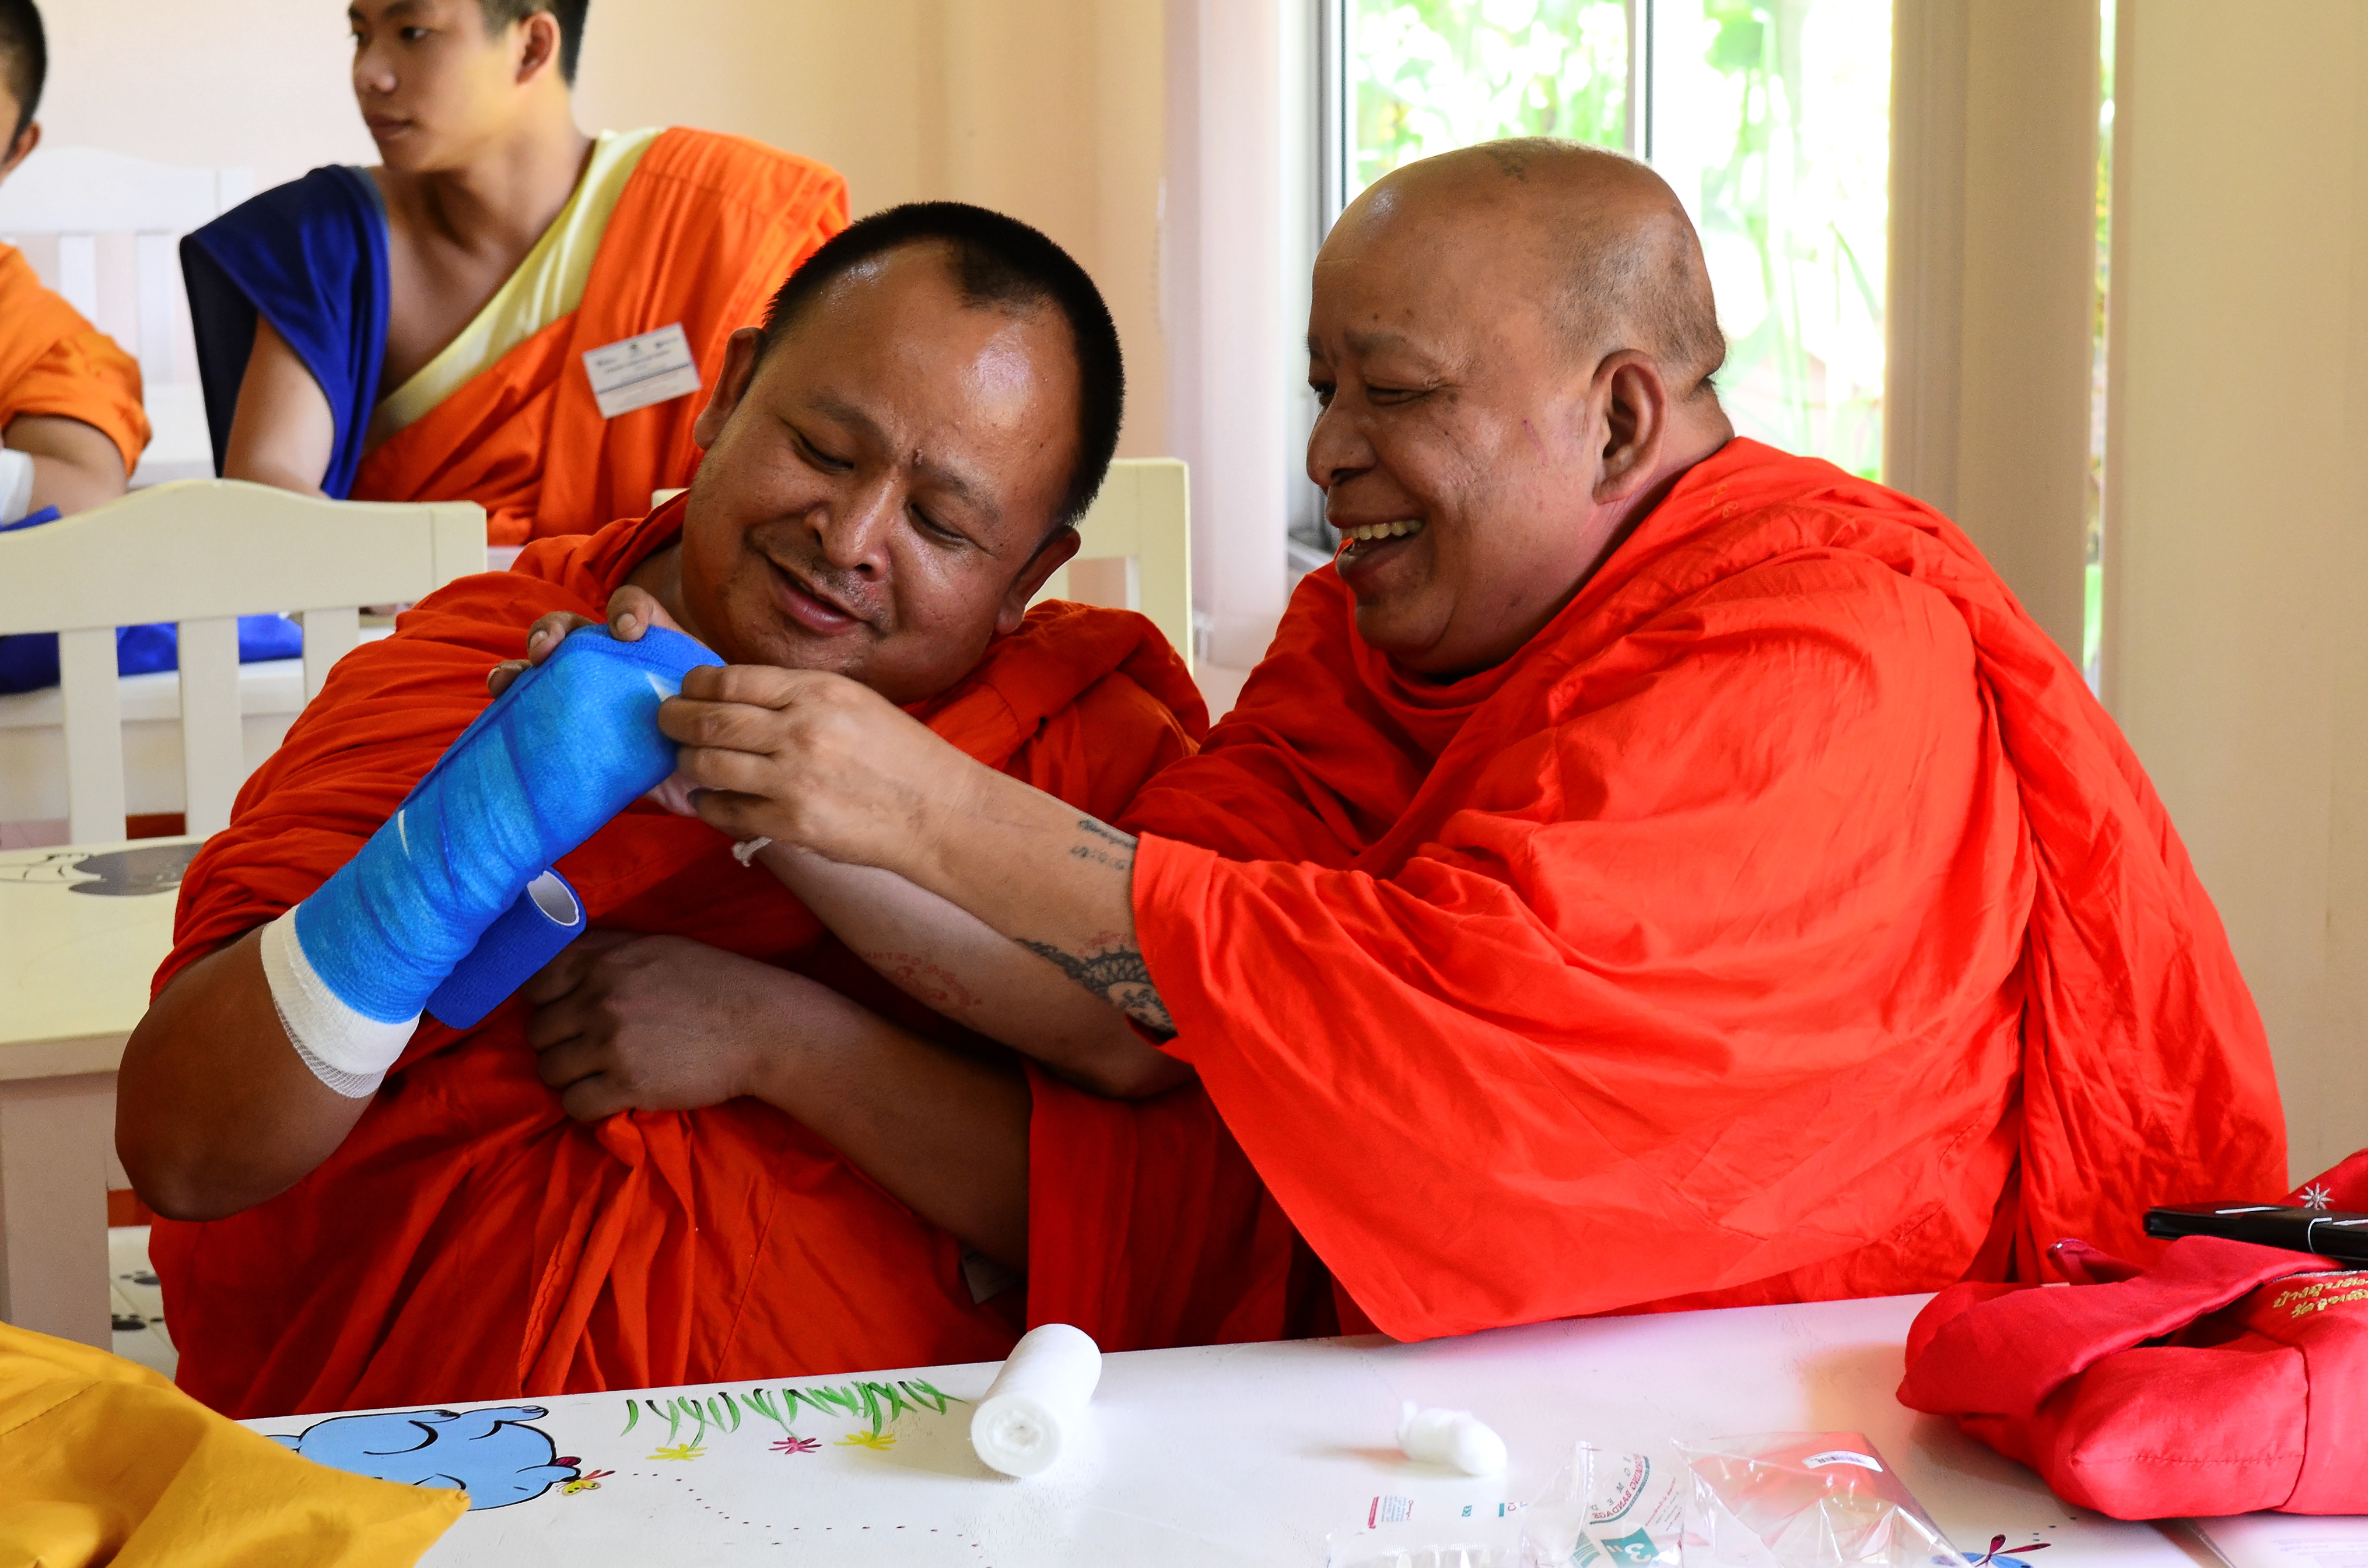 Animal welfare and care training for monks